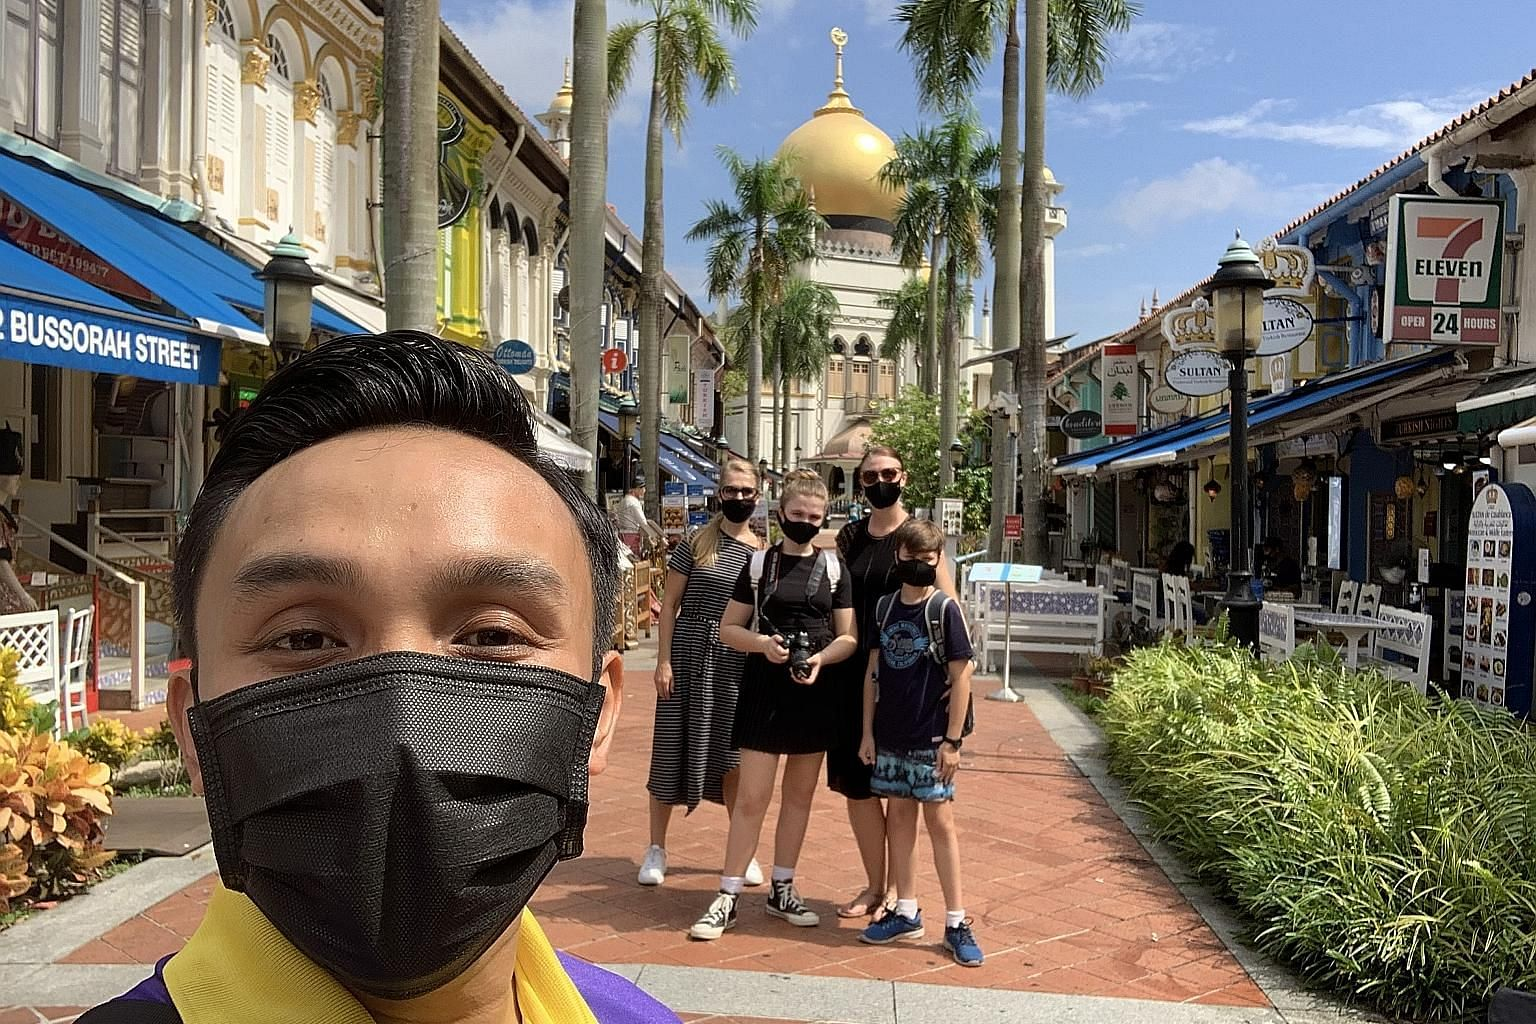 Mr Basirun Mansor (above) is one of the guides leading tours for Monster Day Tours, which launched a series of SG55 tours, in which all proceeds go to the guides.